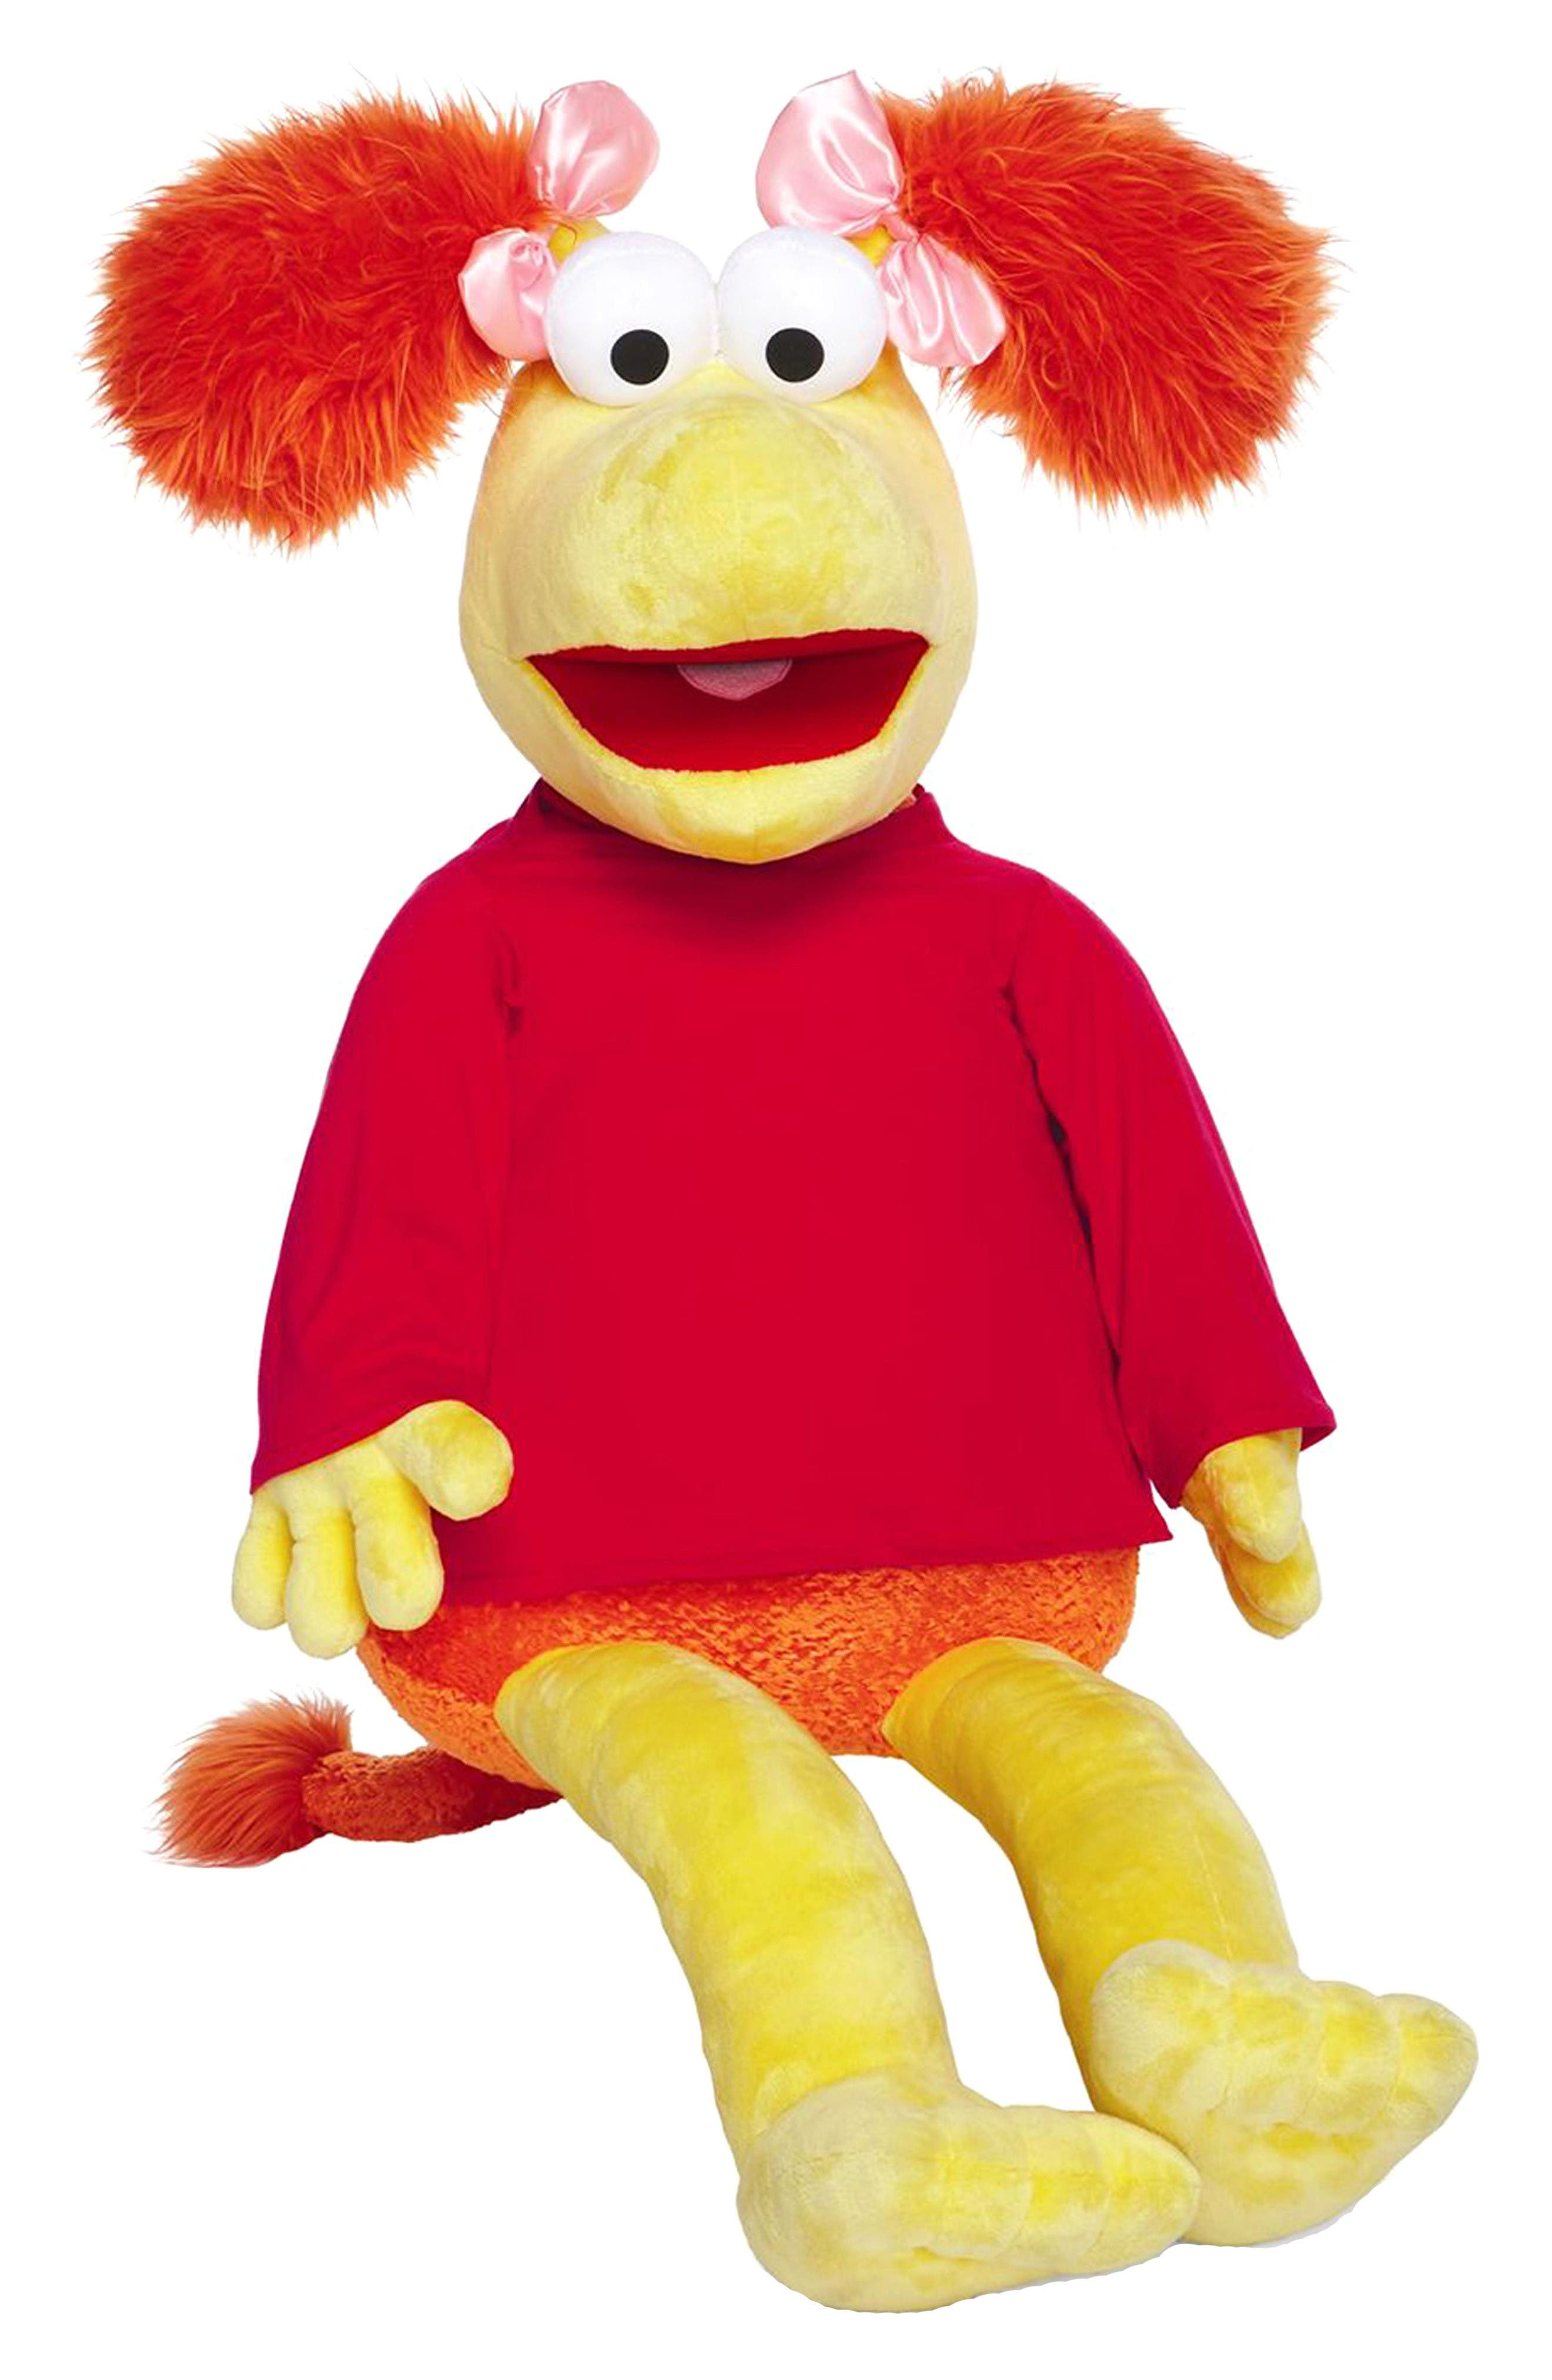 Fraggle Rock Jumbo Red Stuffed Animal,                         Main,                         color, Red